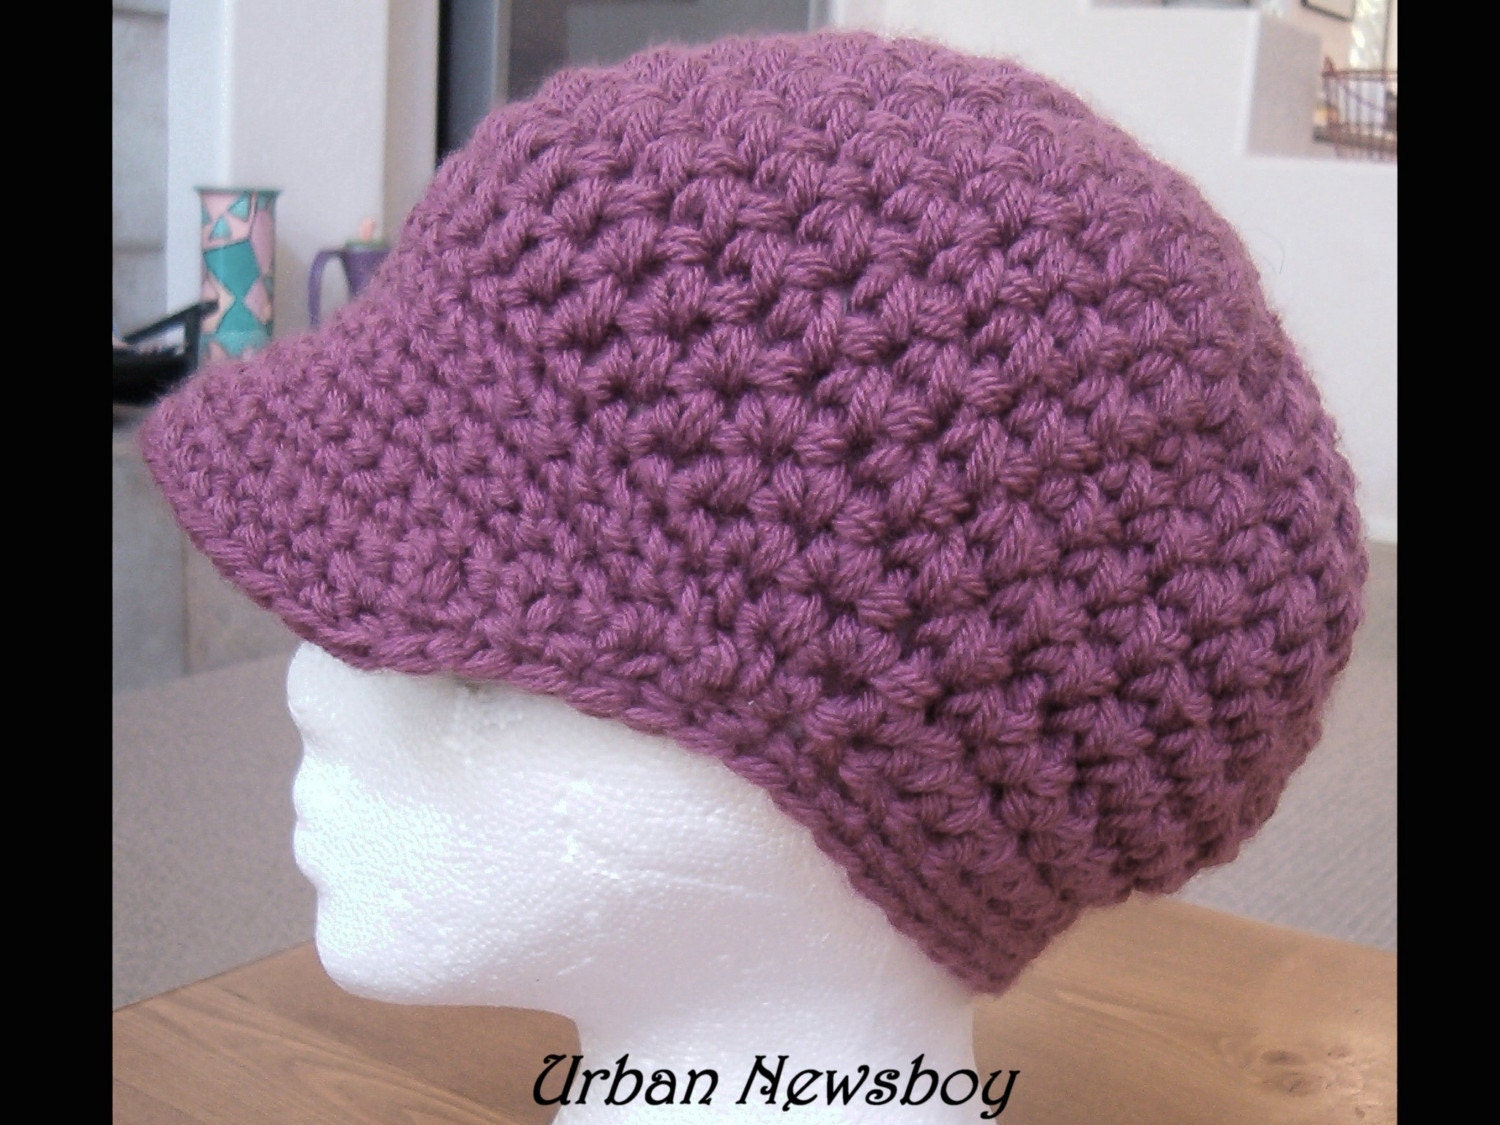 Classy Cloche Hat Pattern to Crochet - Yahoo! Voices - voices